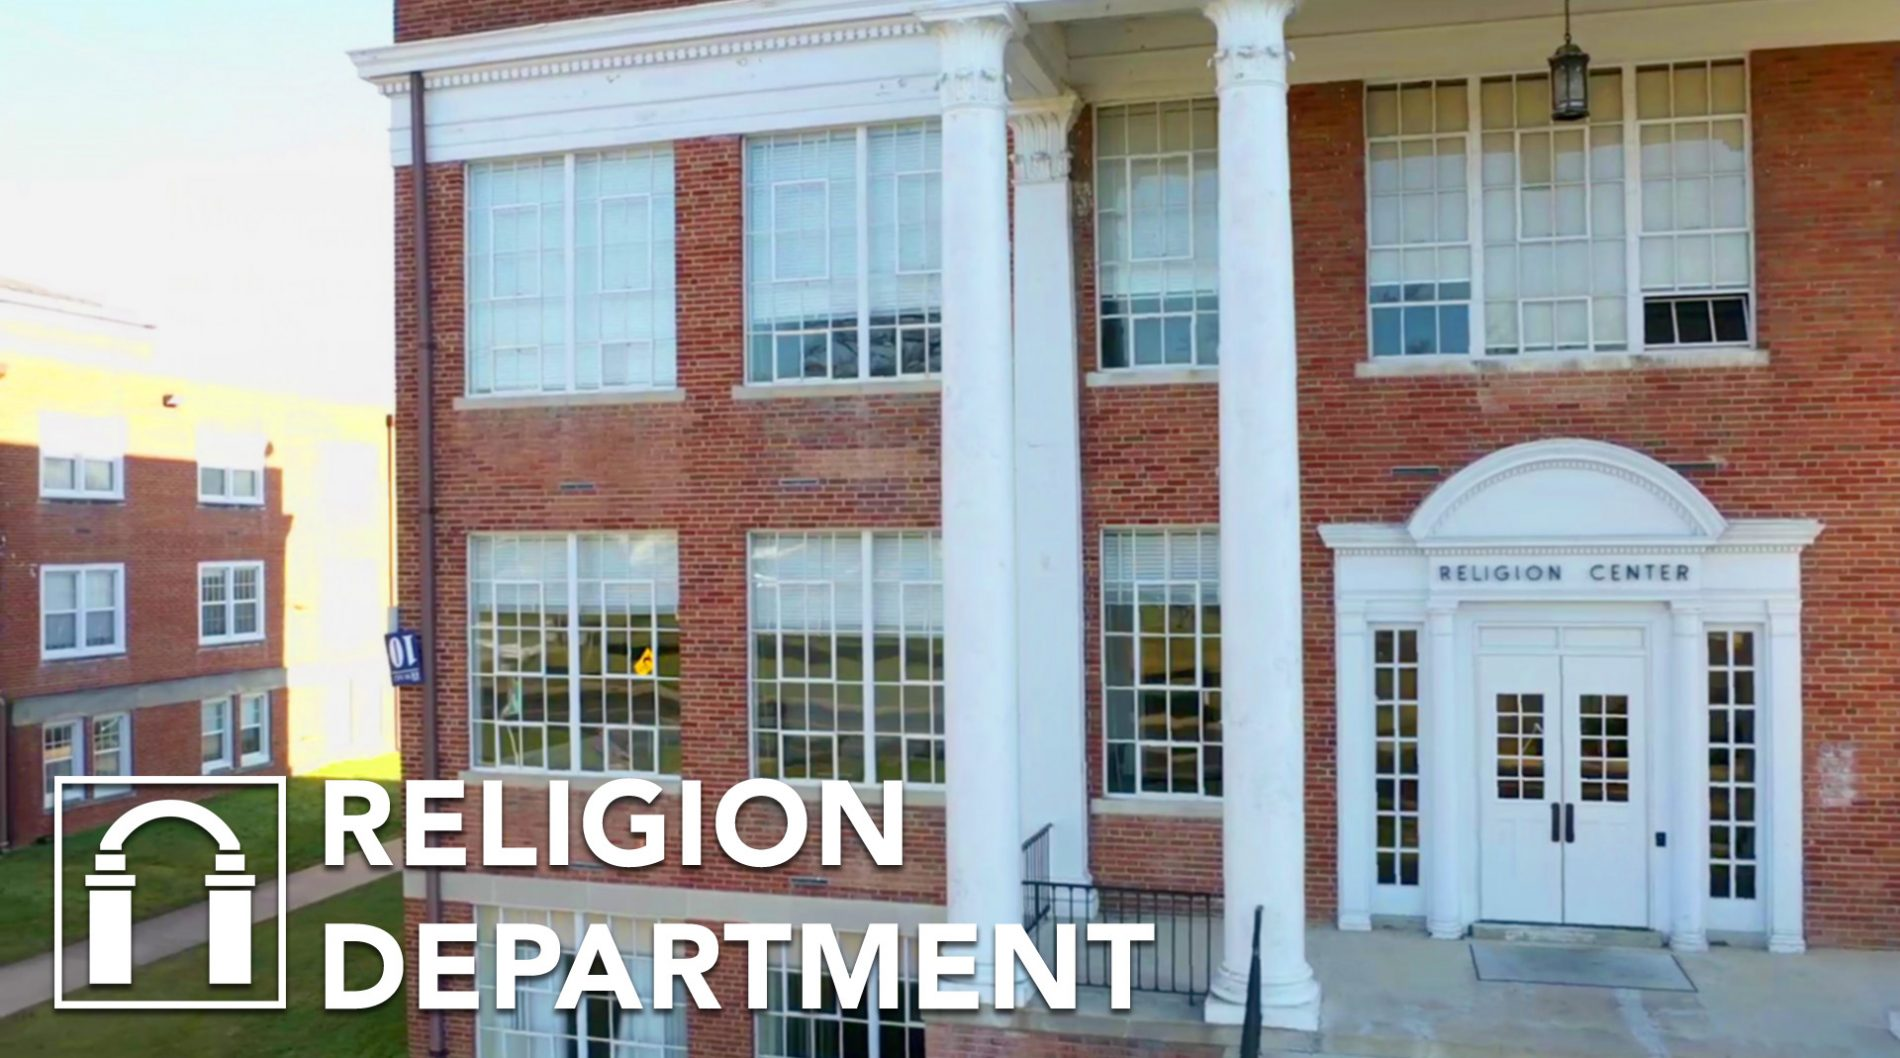 Ready for You! Religion Department